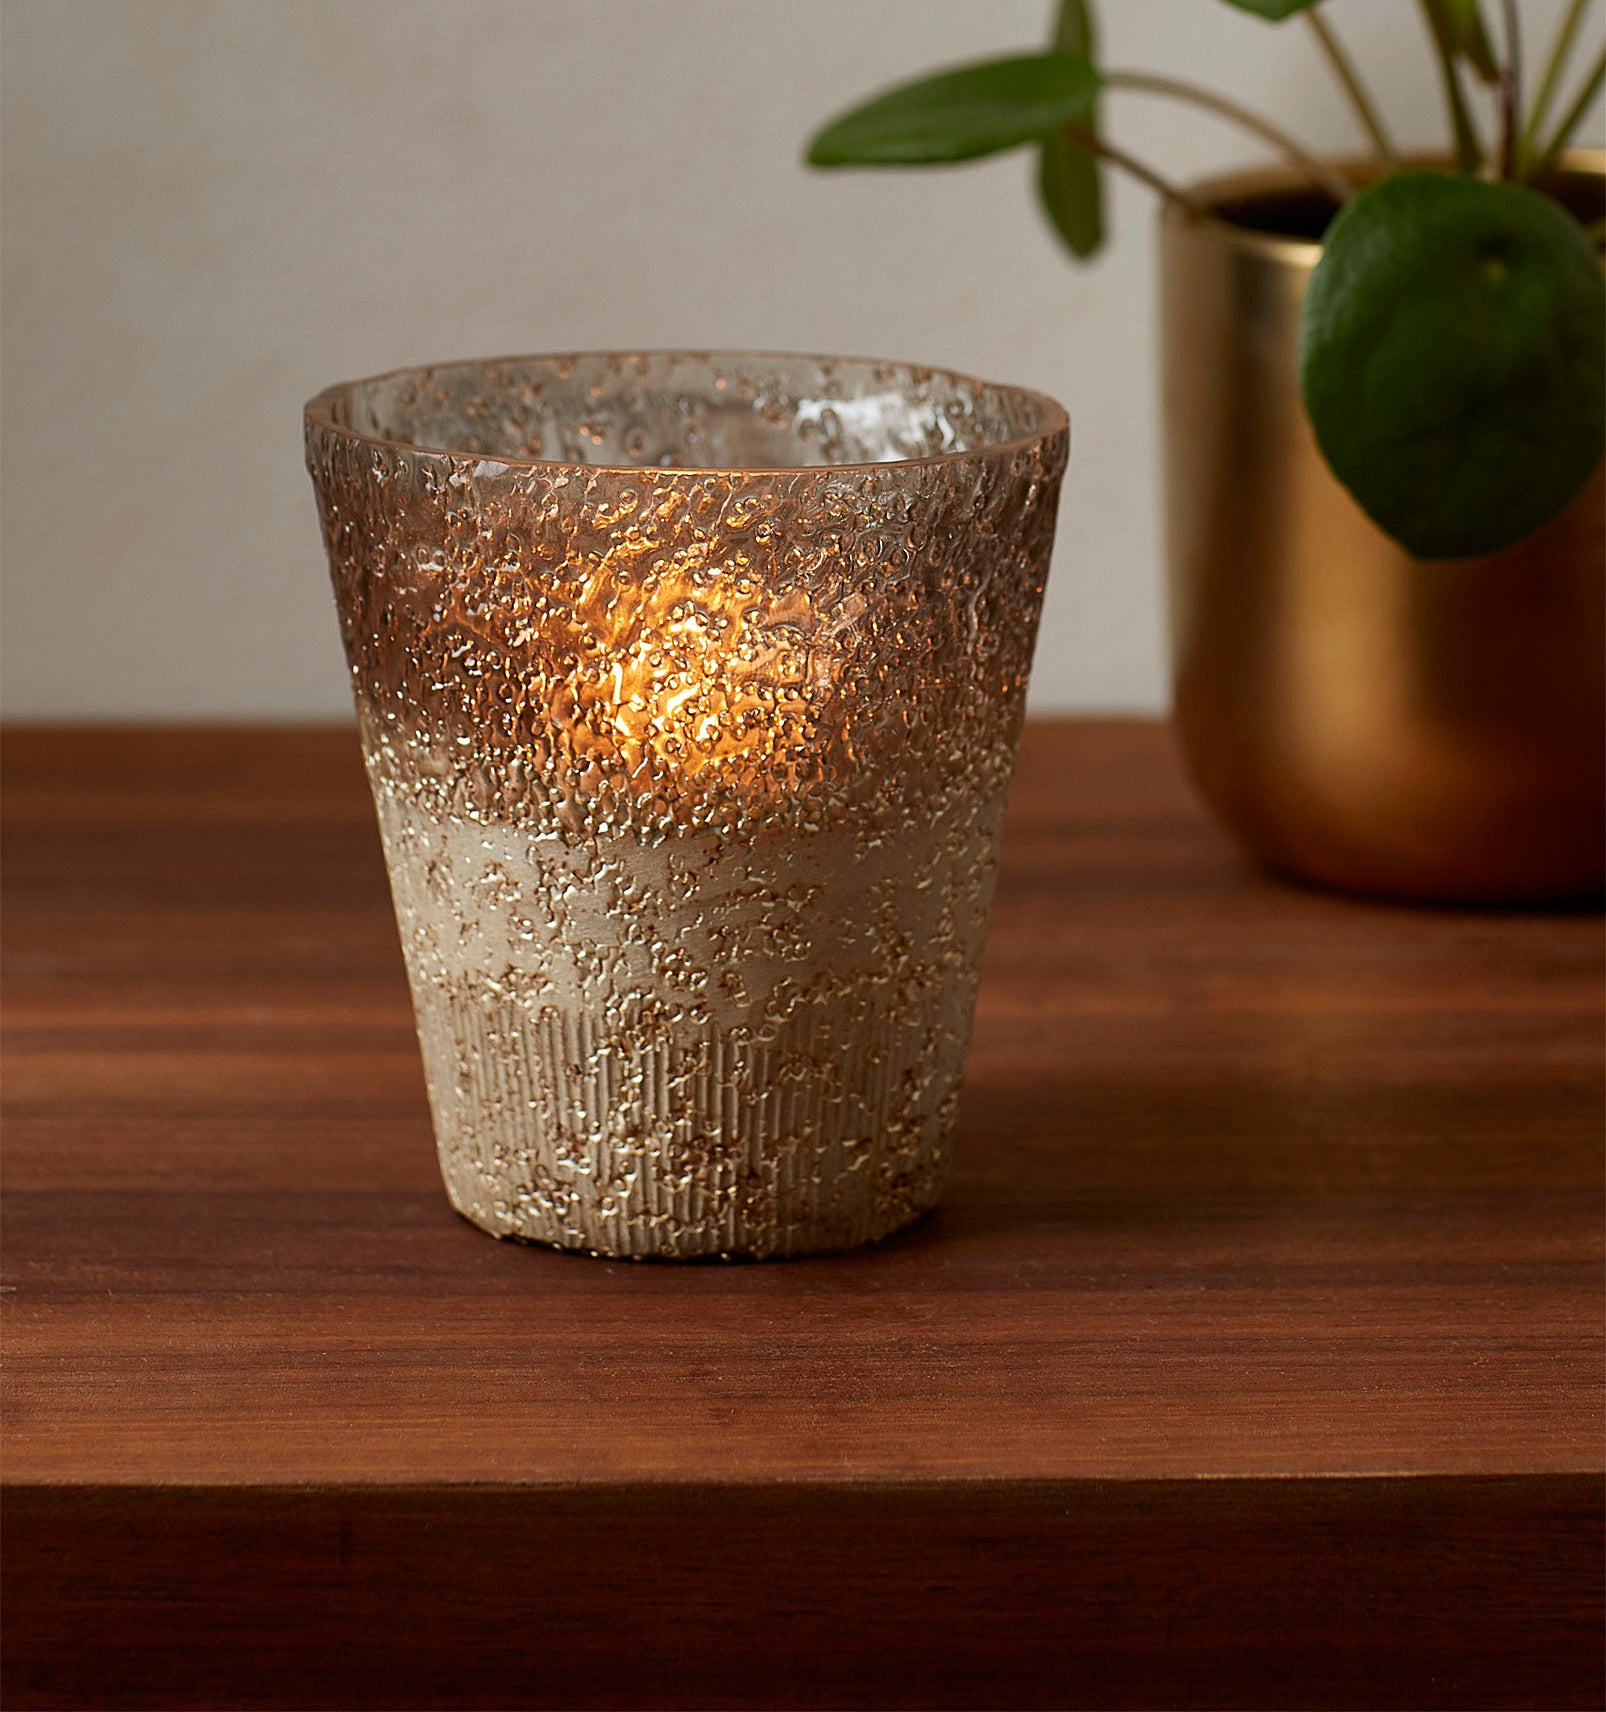 A candle votive is illuminated by a candle